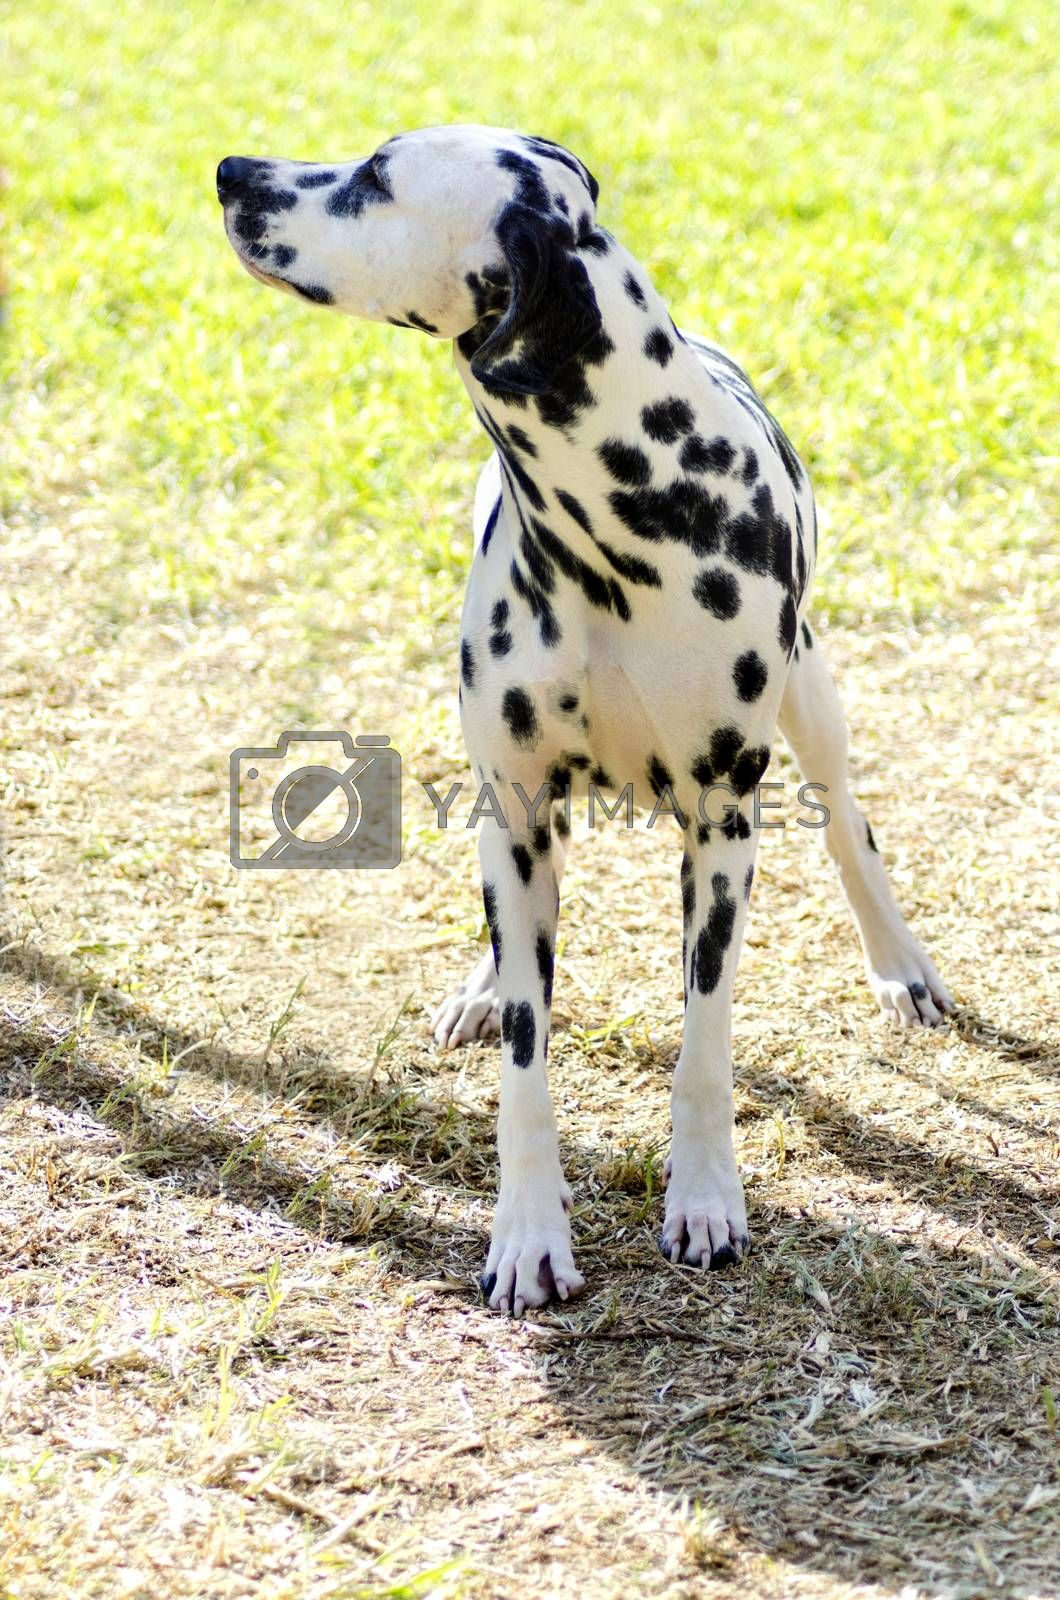 Dalmatian dog by f8grapher